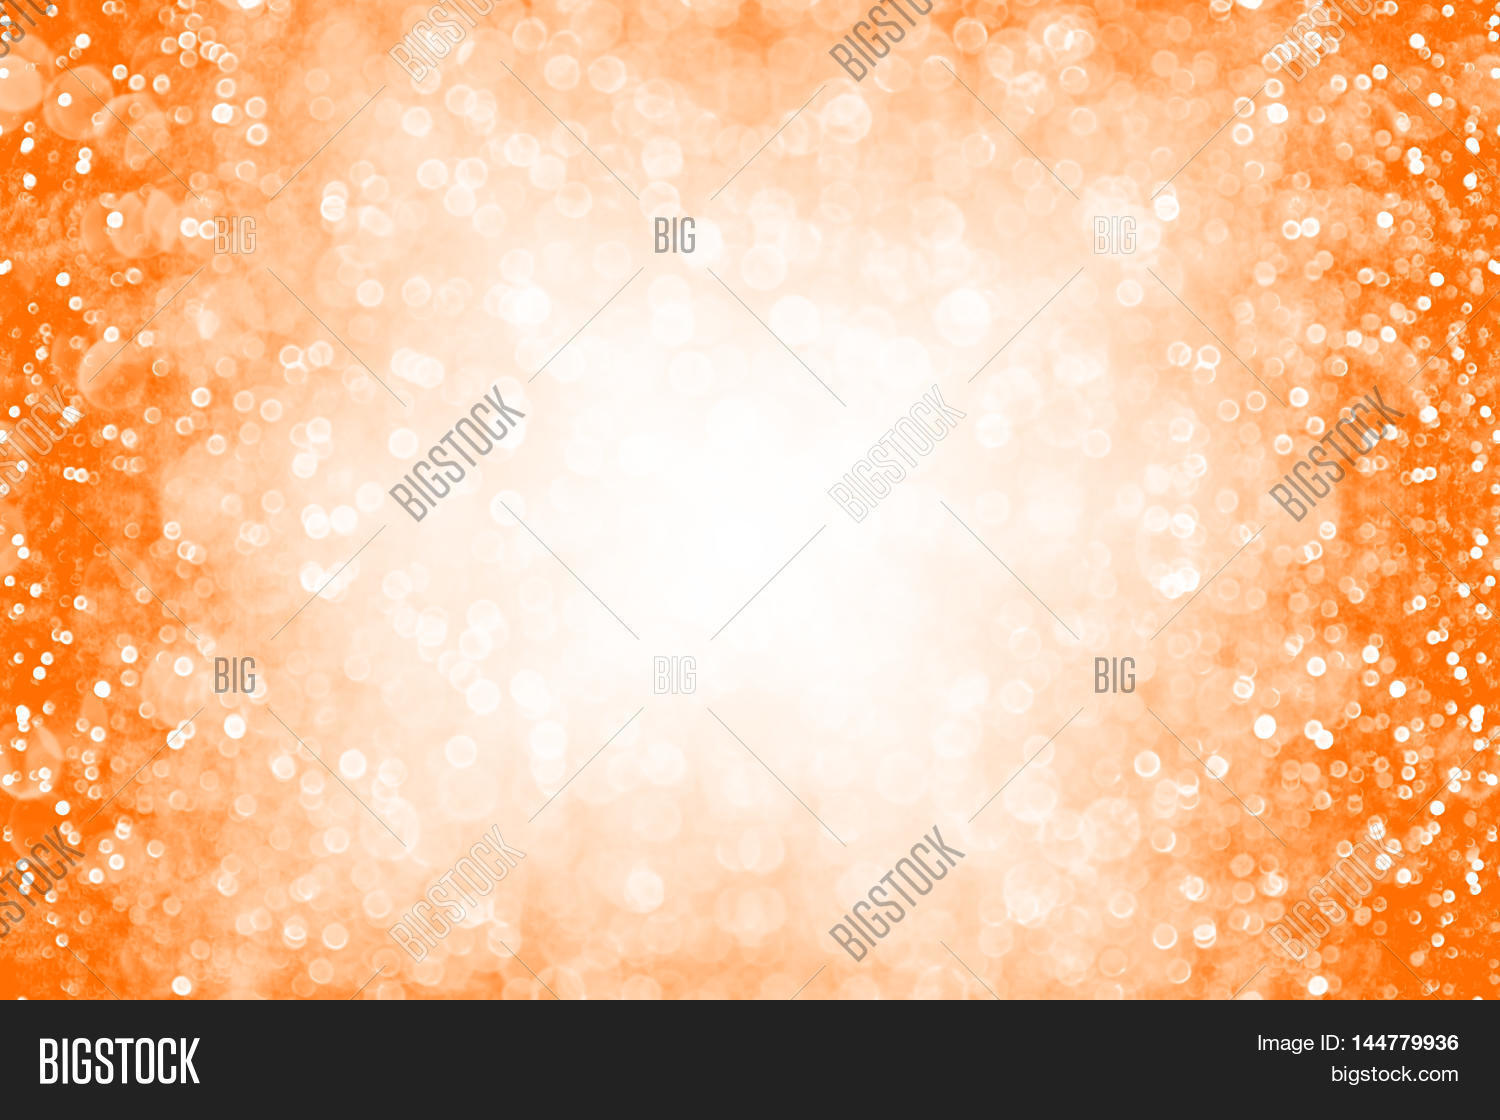 Abstract Orange Color Image Photo Free Trial Bigstock